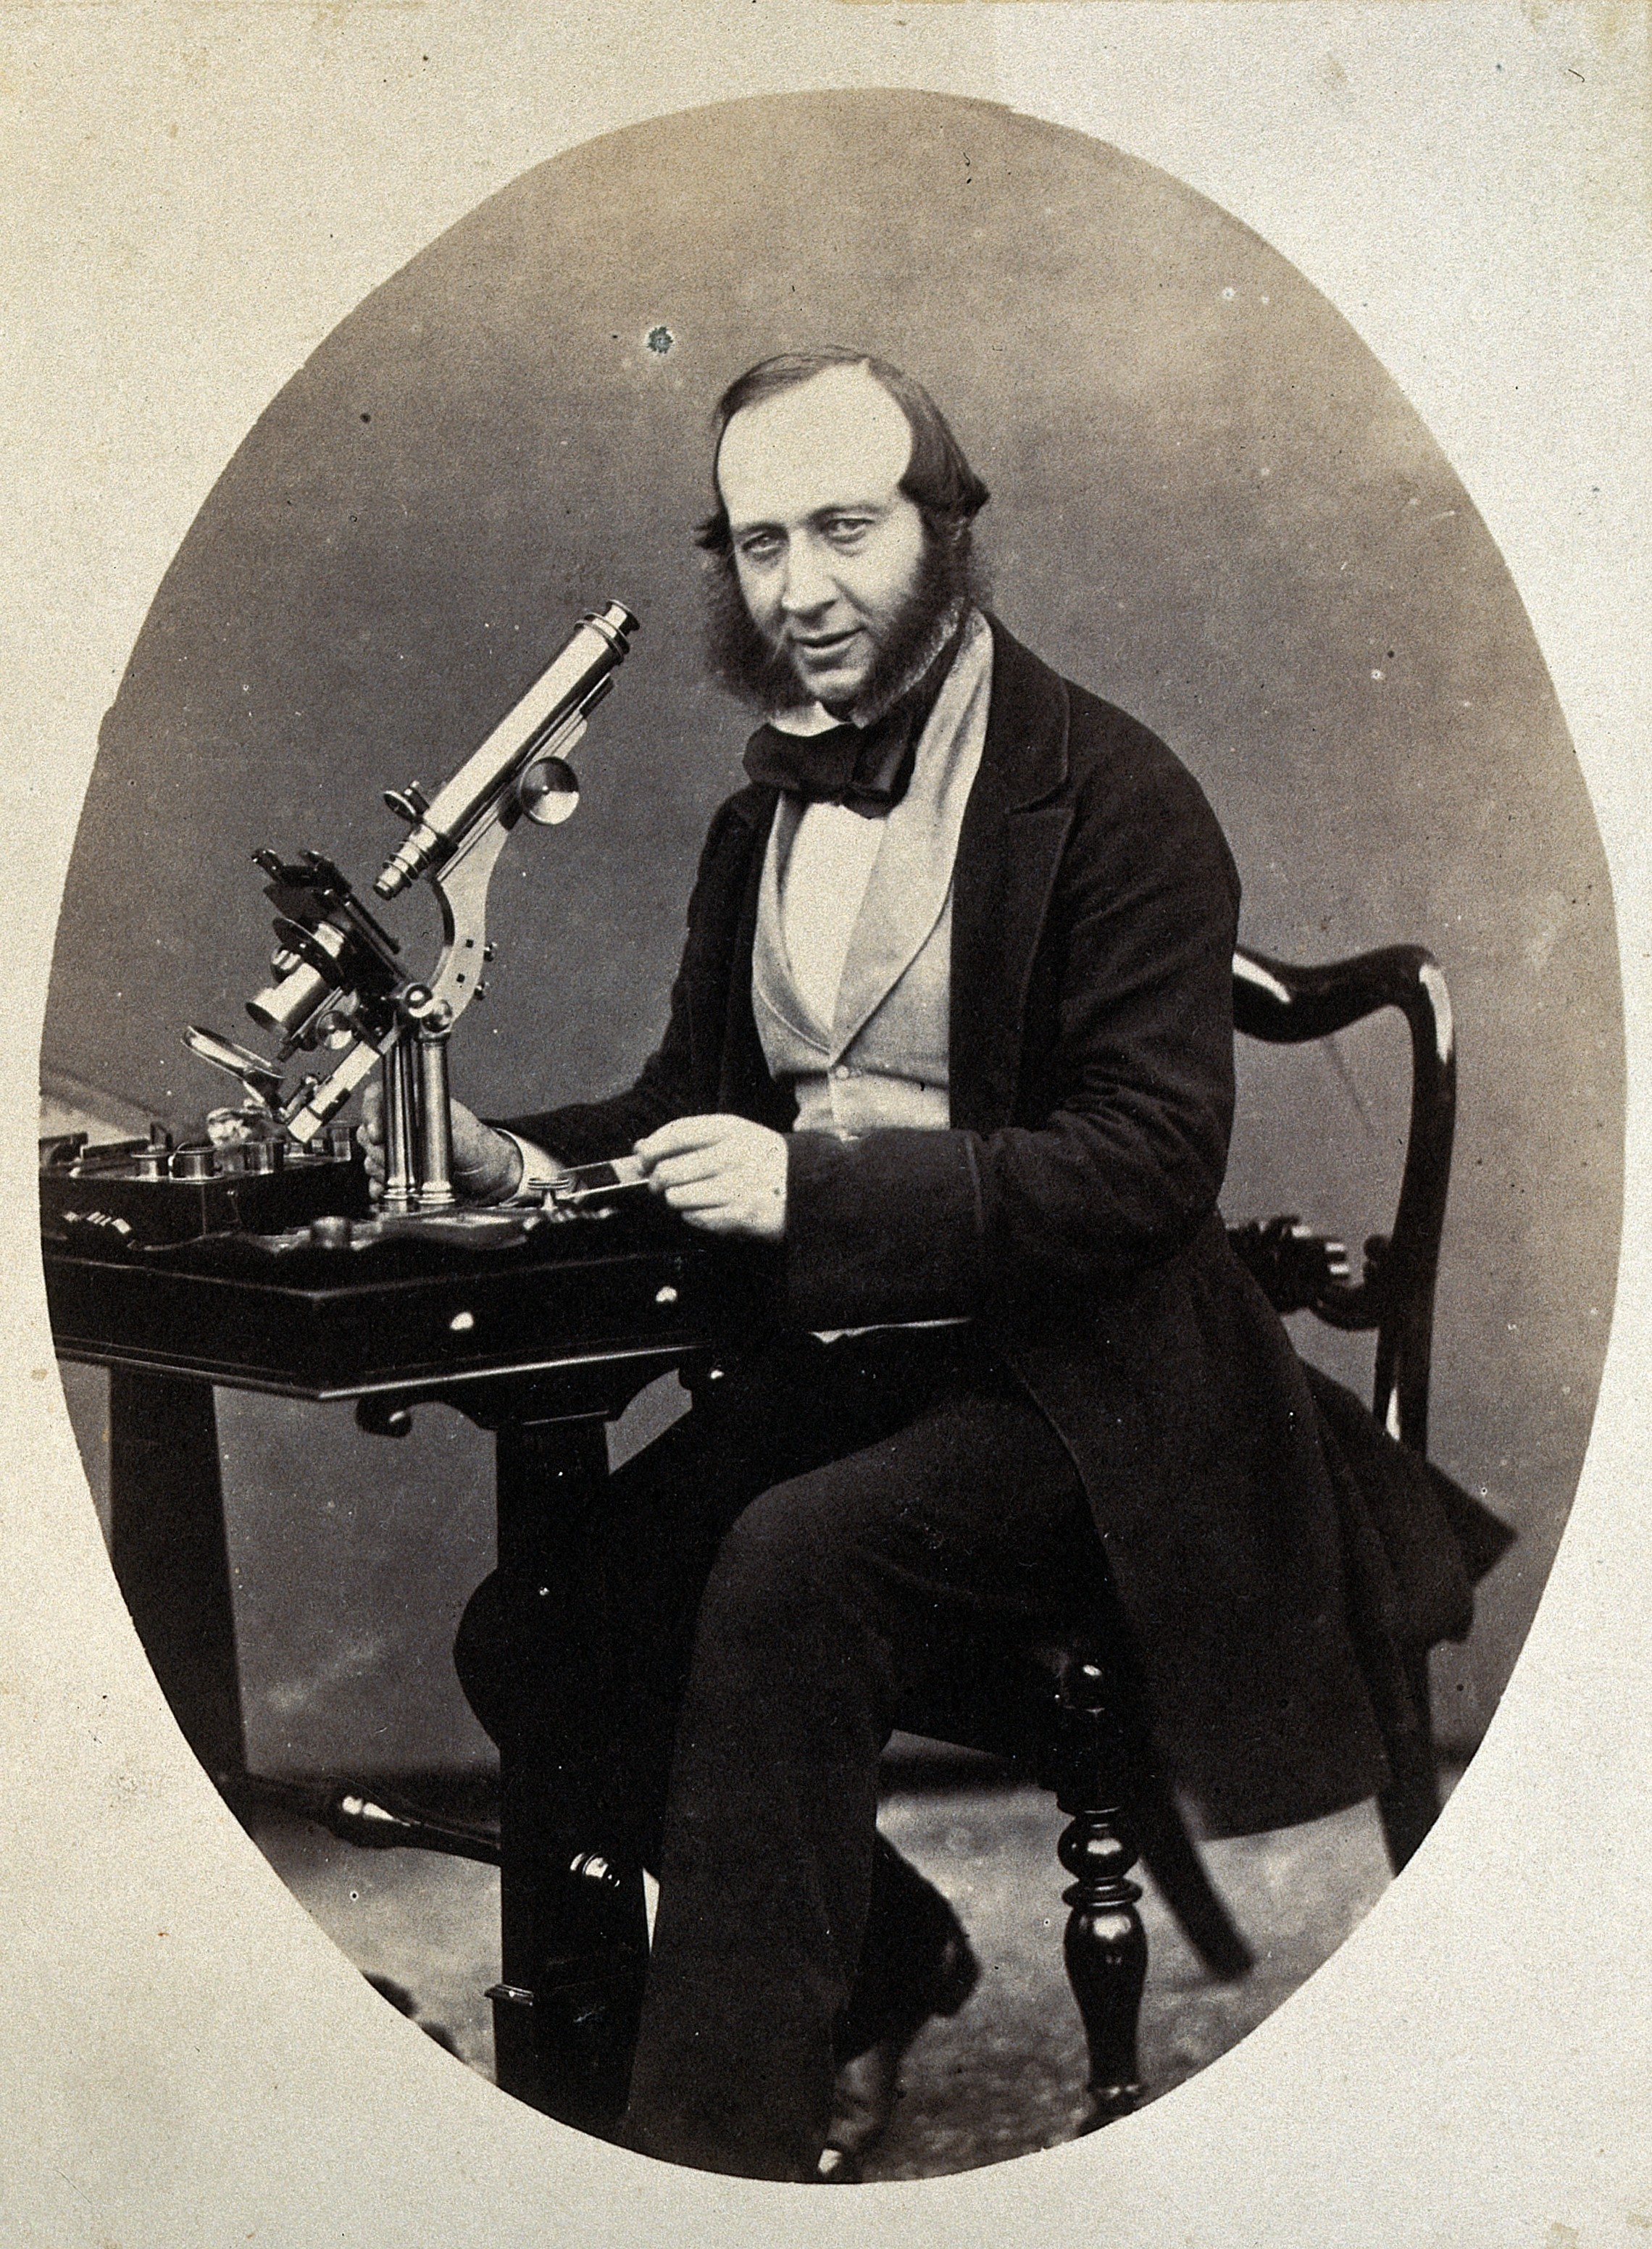 Image of George Shadbolt from Wikidata